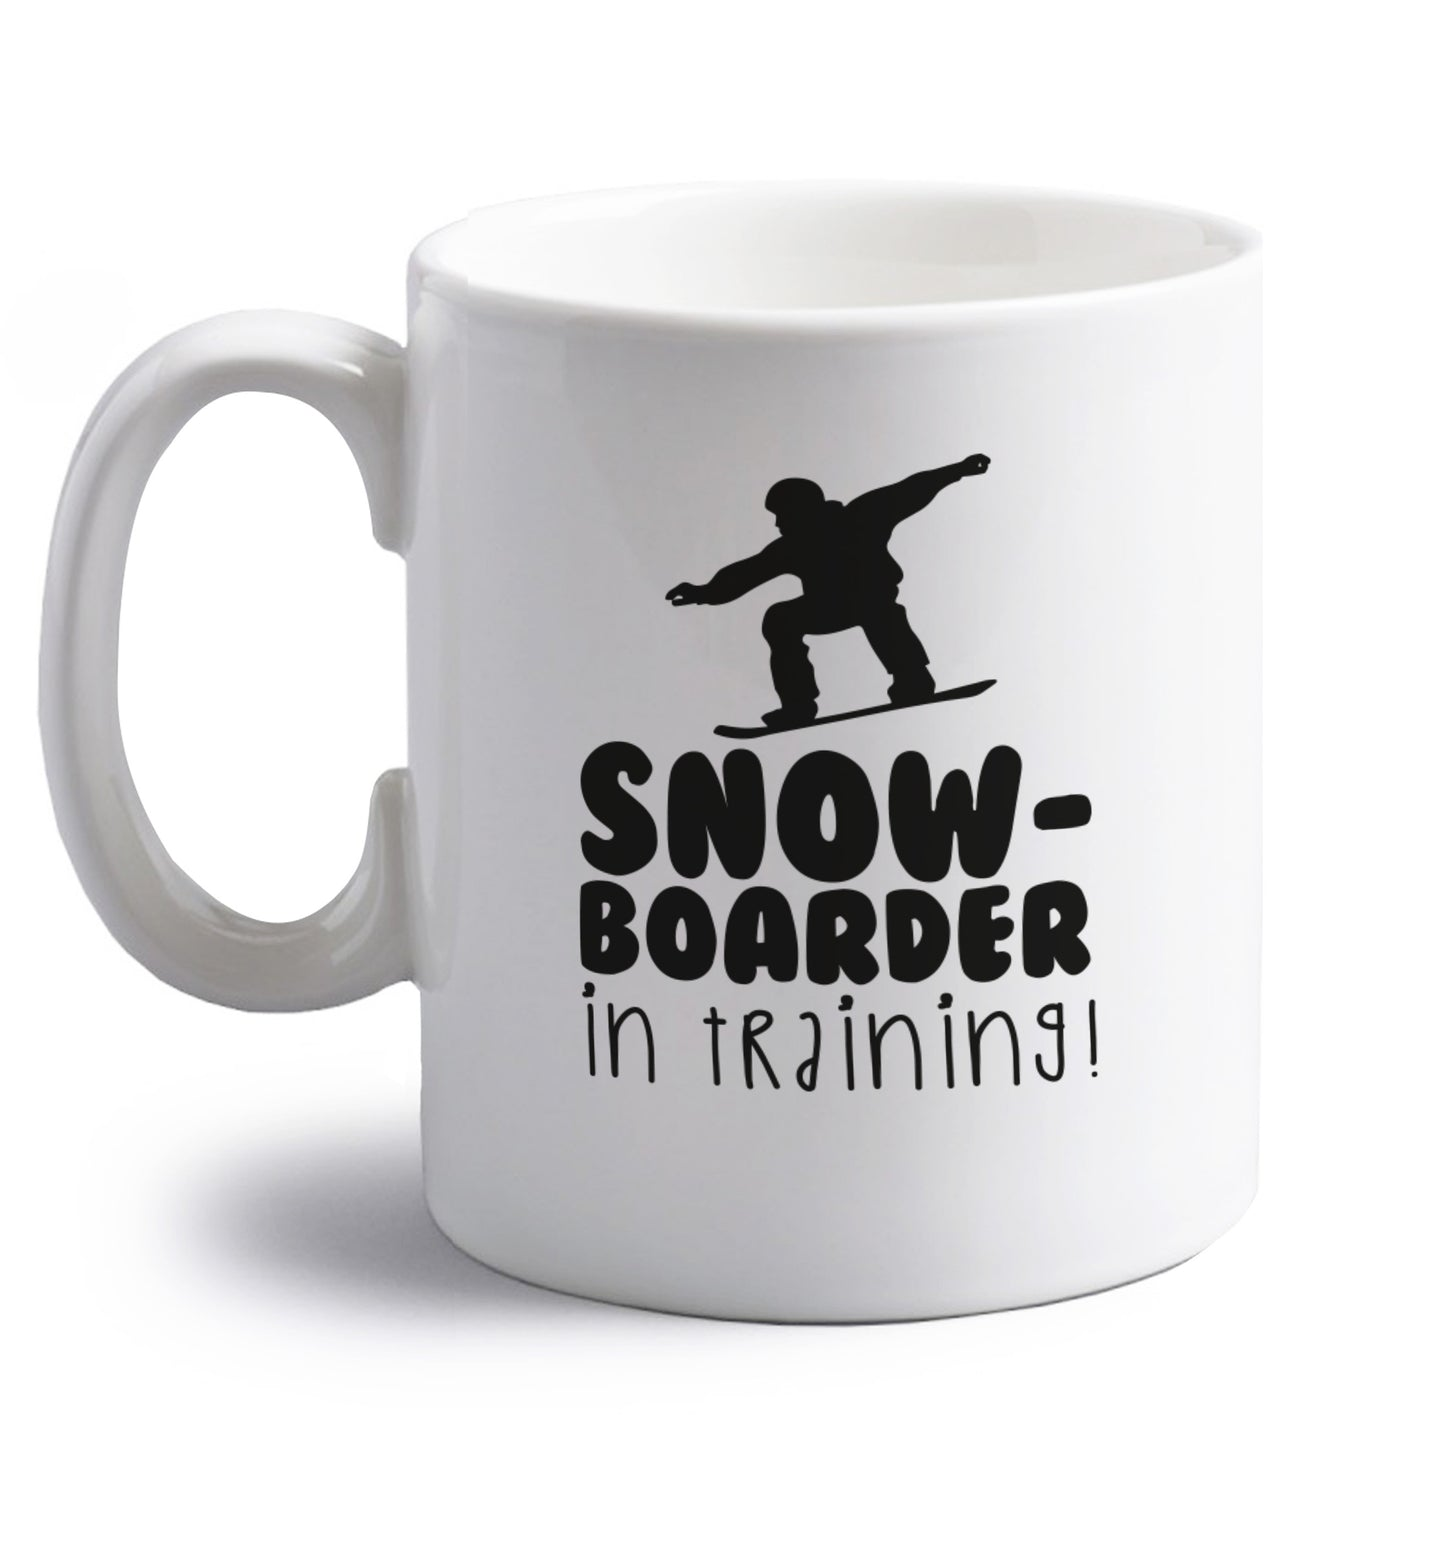 Snowboarder in training right handed white ceramic mug